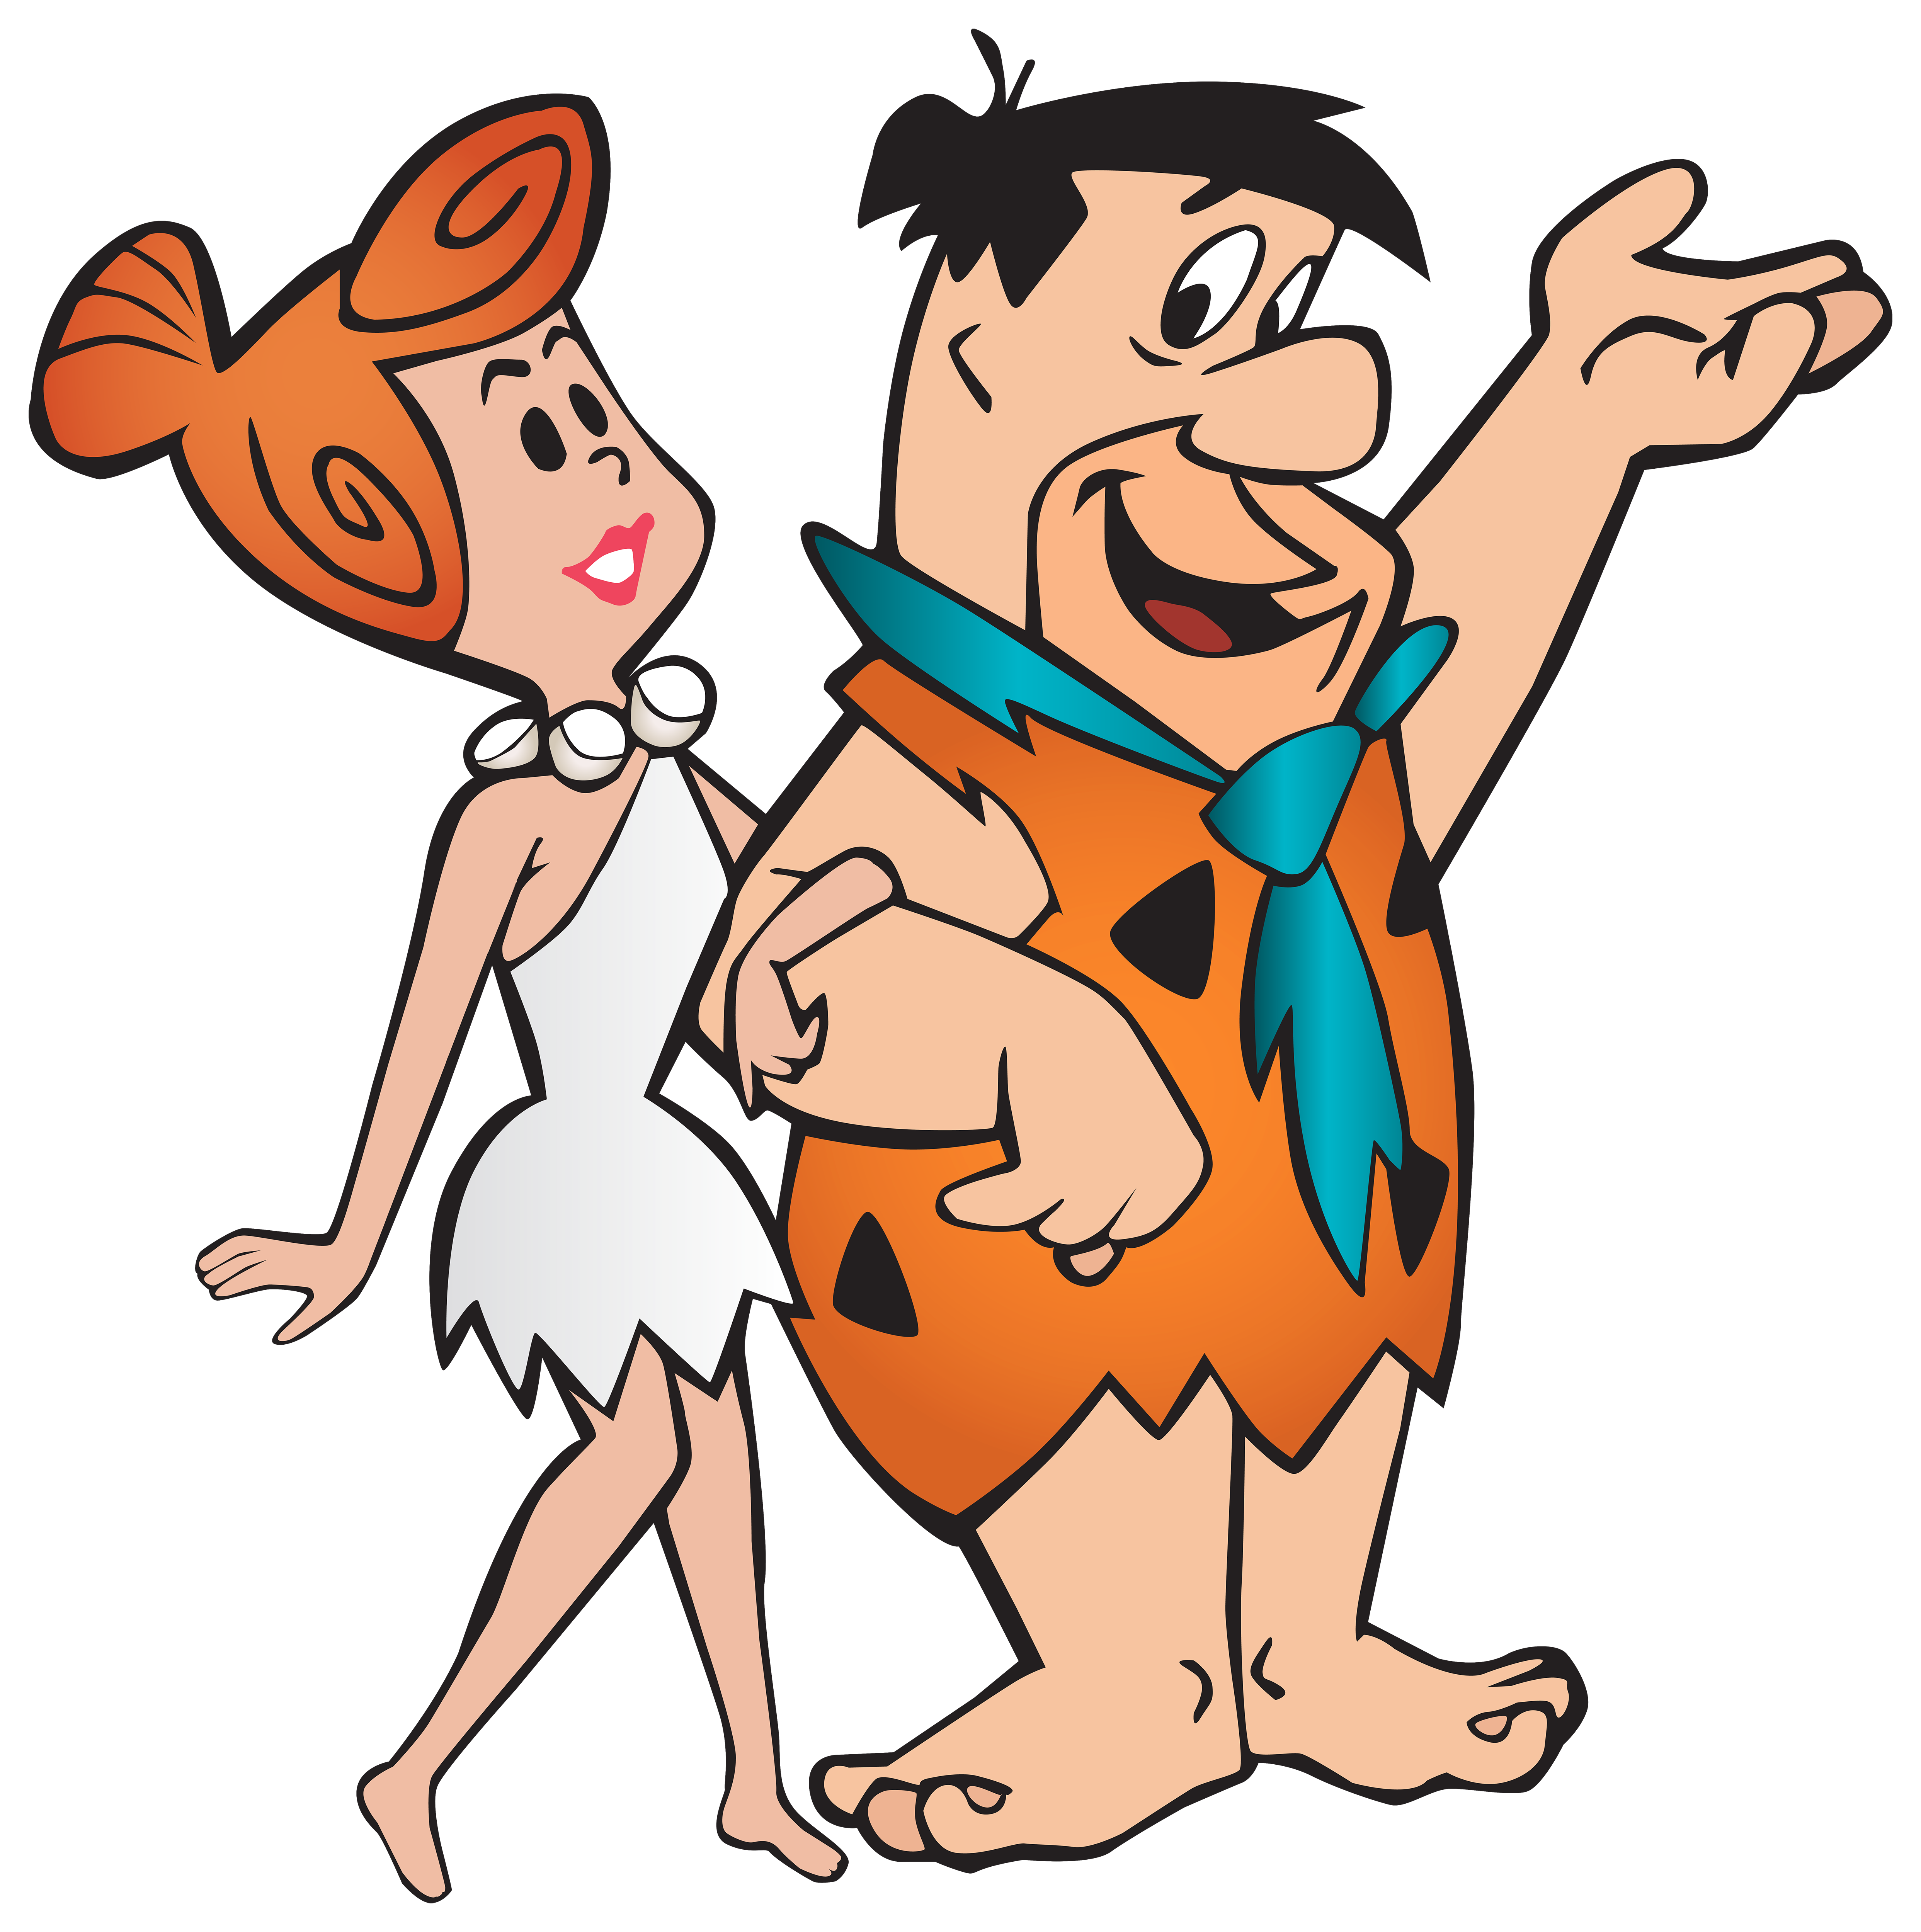 Fred And Wilma Flintstone Transparent Png Clip Art Image Gallery Yopriceville High Qua Classic Cartoon Characters Animated Cartoons 90s Cartoon Characters